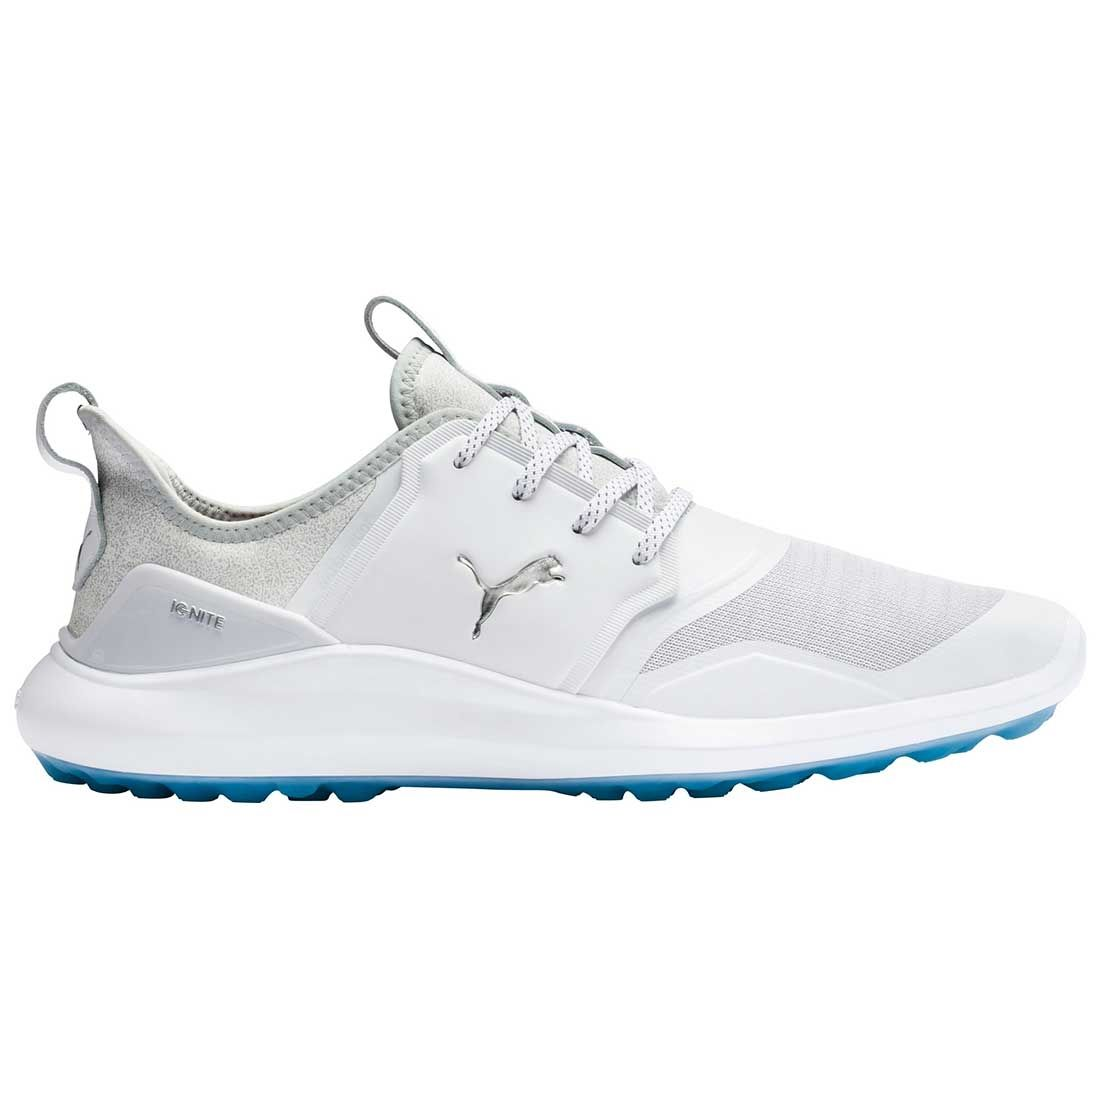 Buy Puma Ignite Nxt Golf Shoes White Silver High Rise Golf Discount